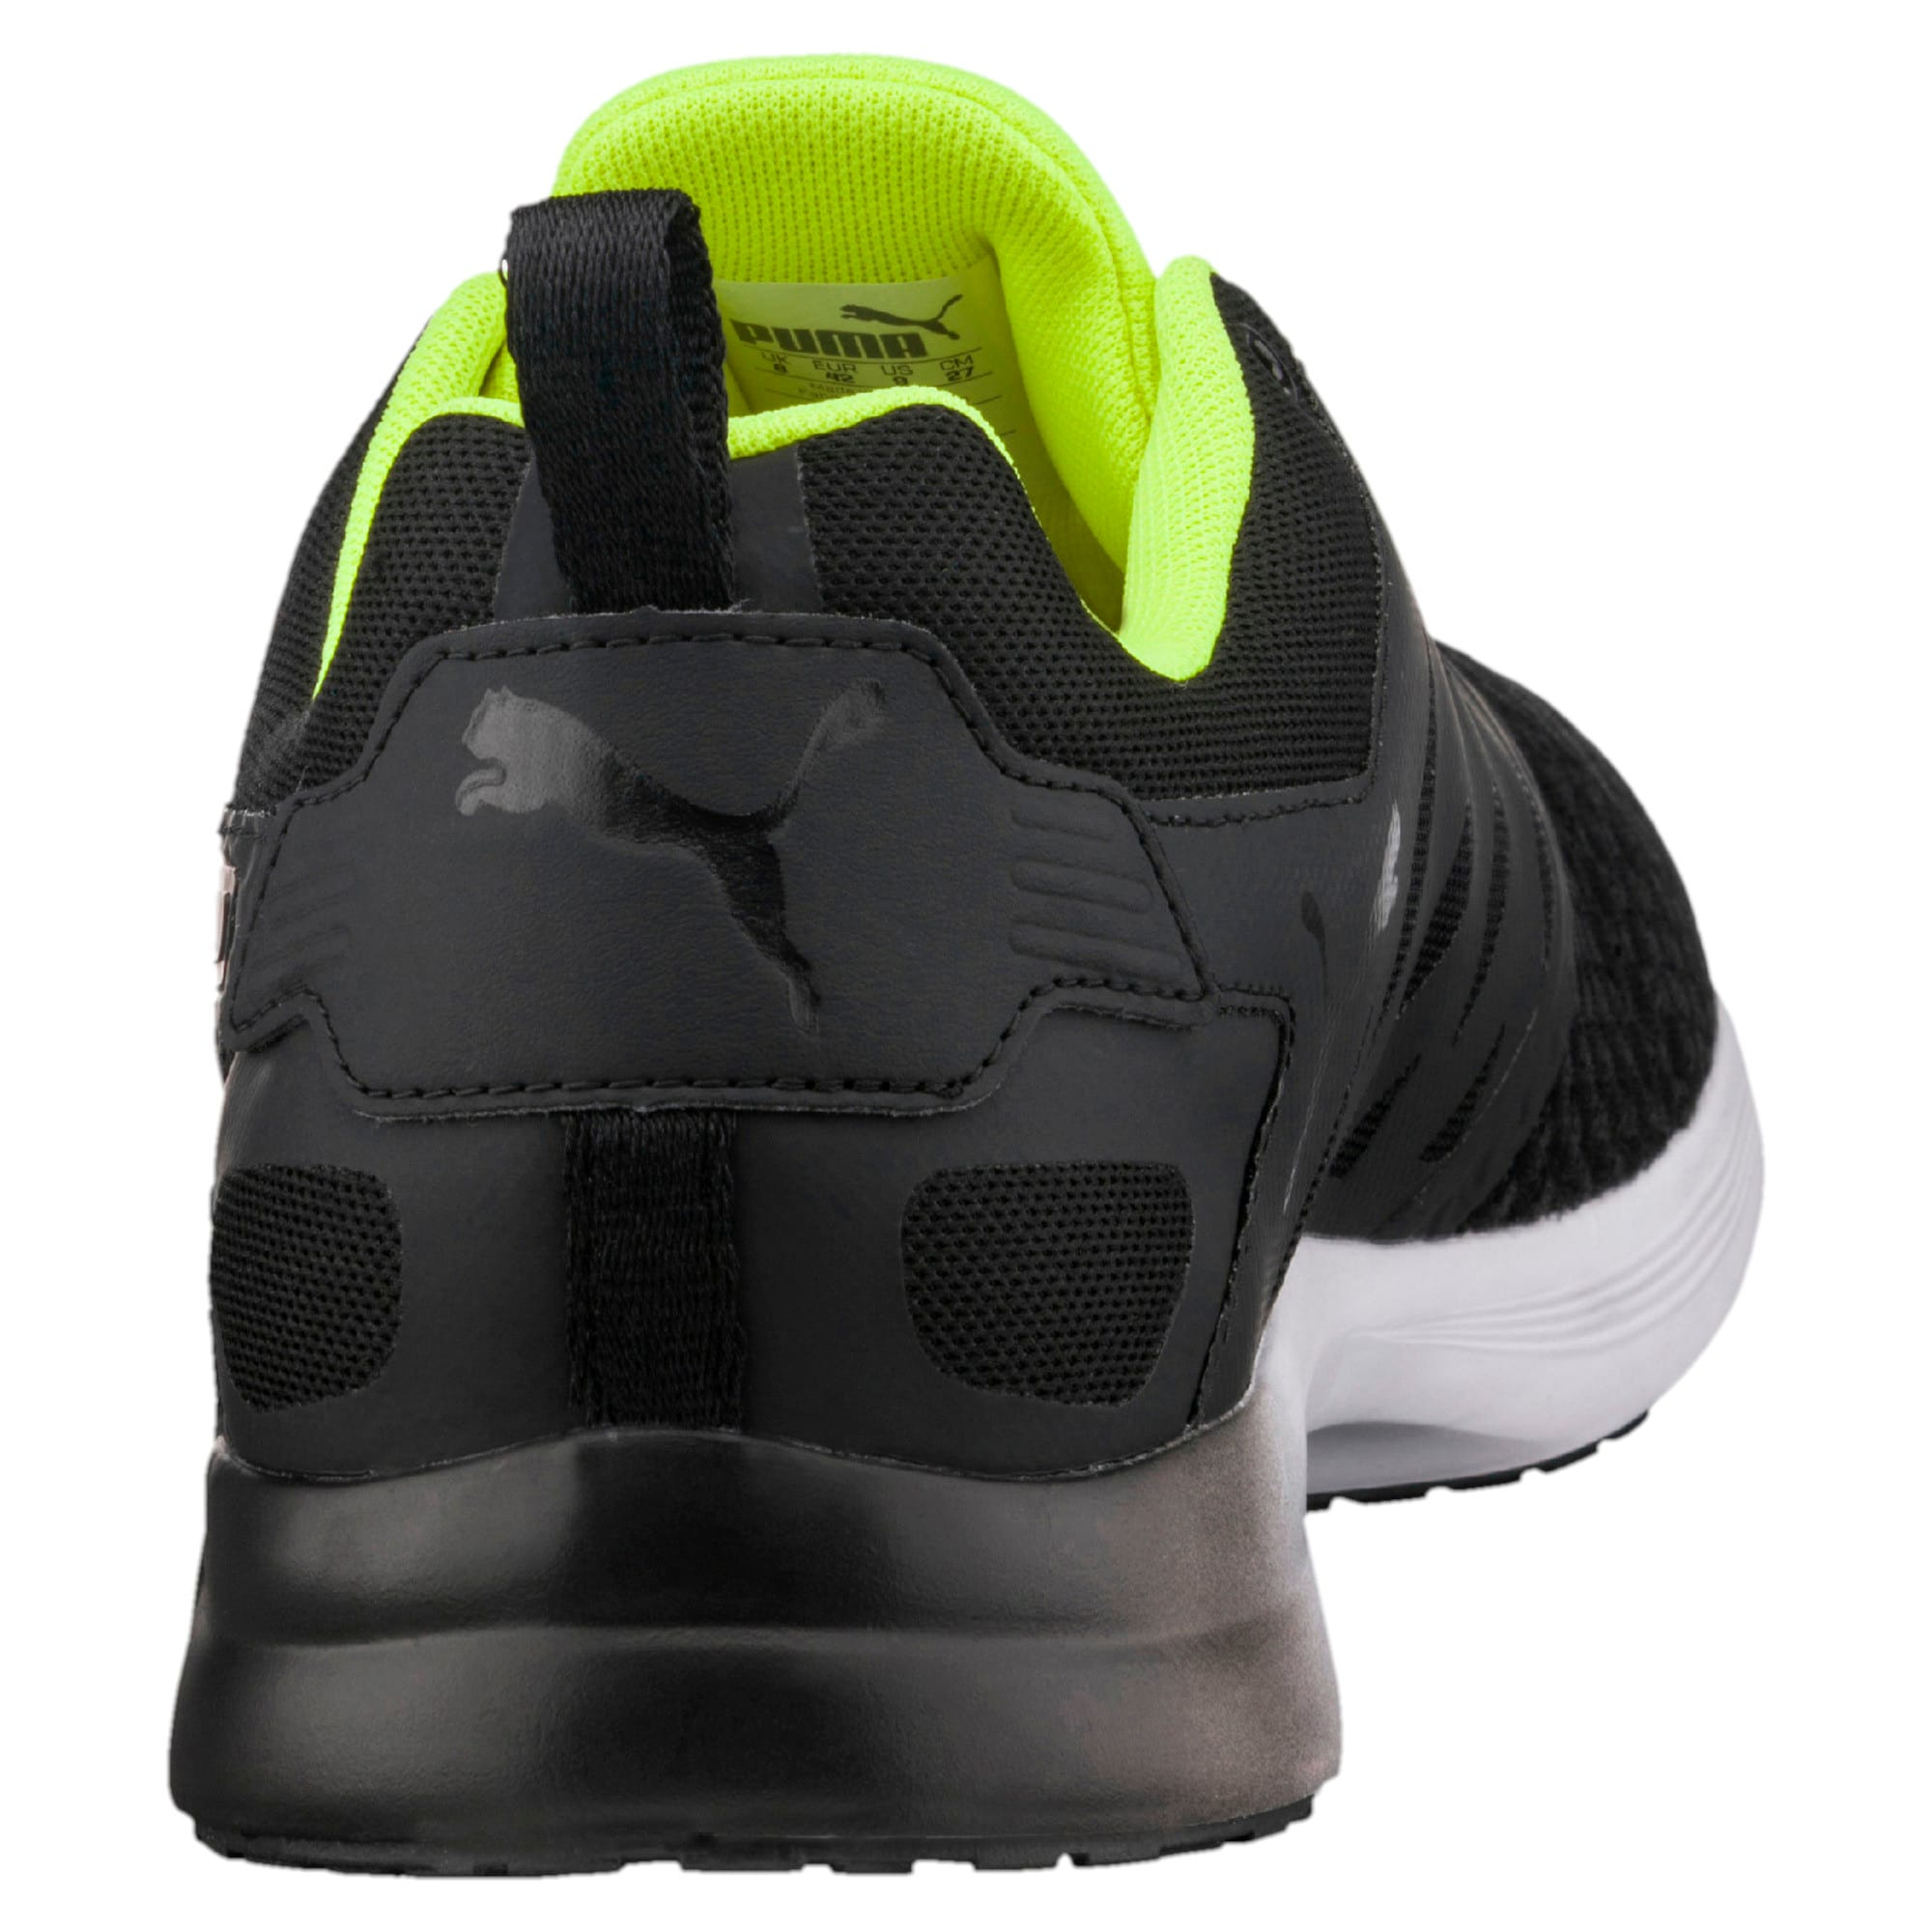 Thumbnail 3 of Pulse XT v2 Mesh Men's Training Shoes, Puma Black-Safety Yellow, medium-IND